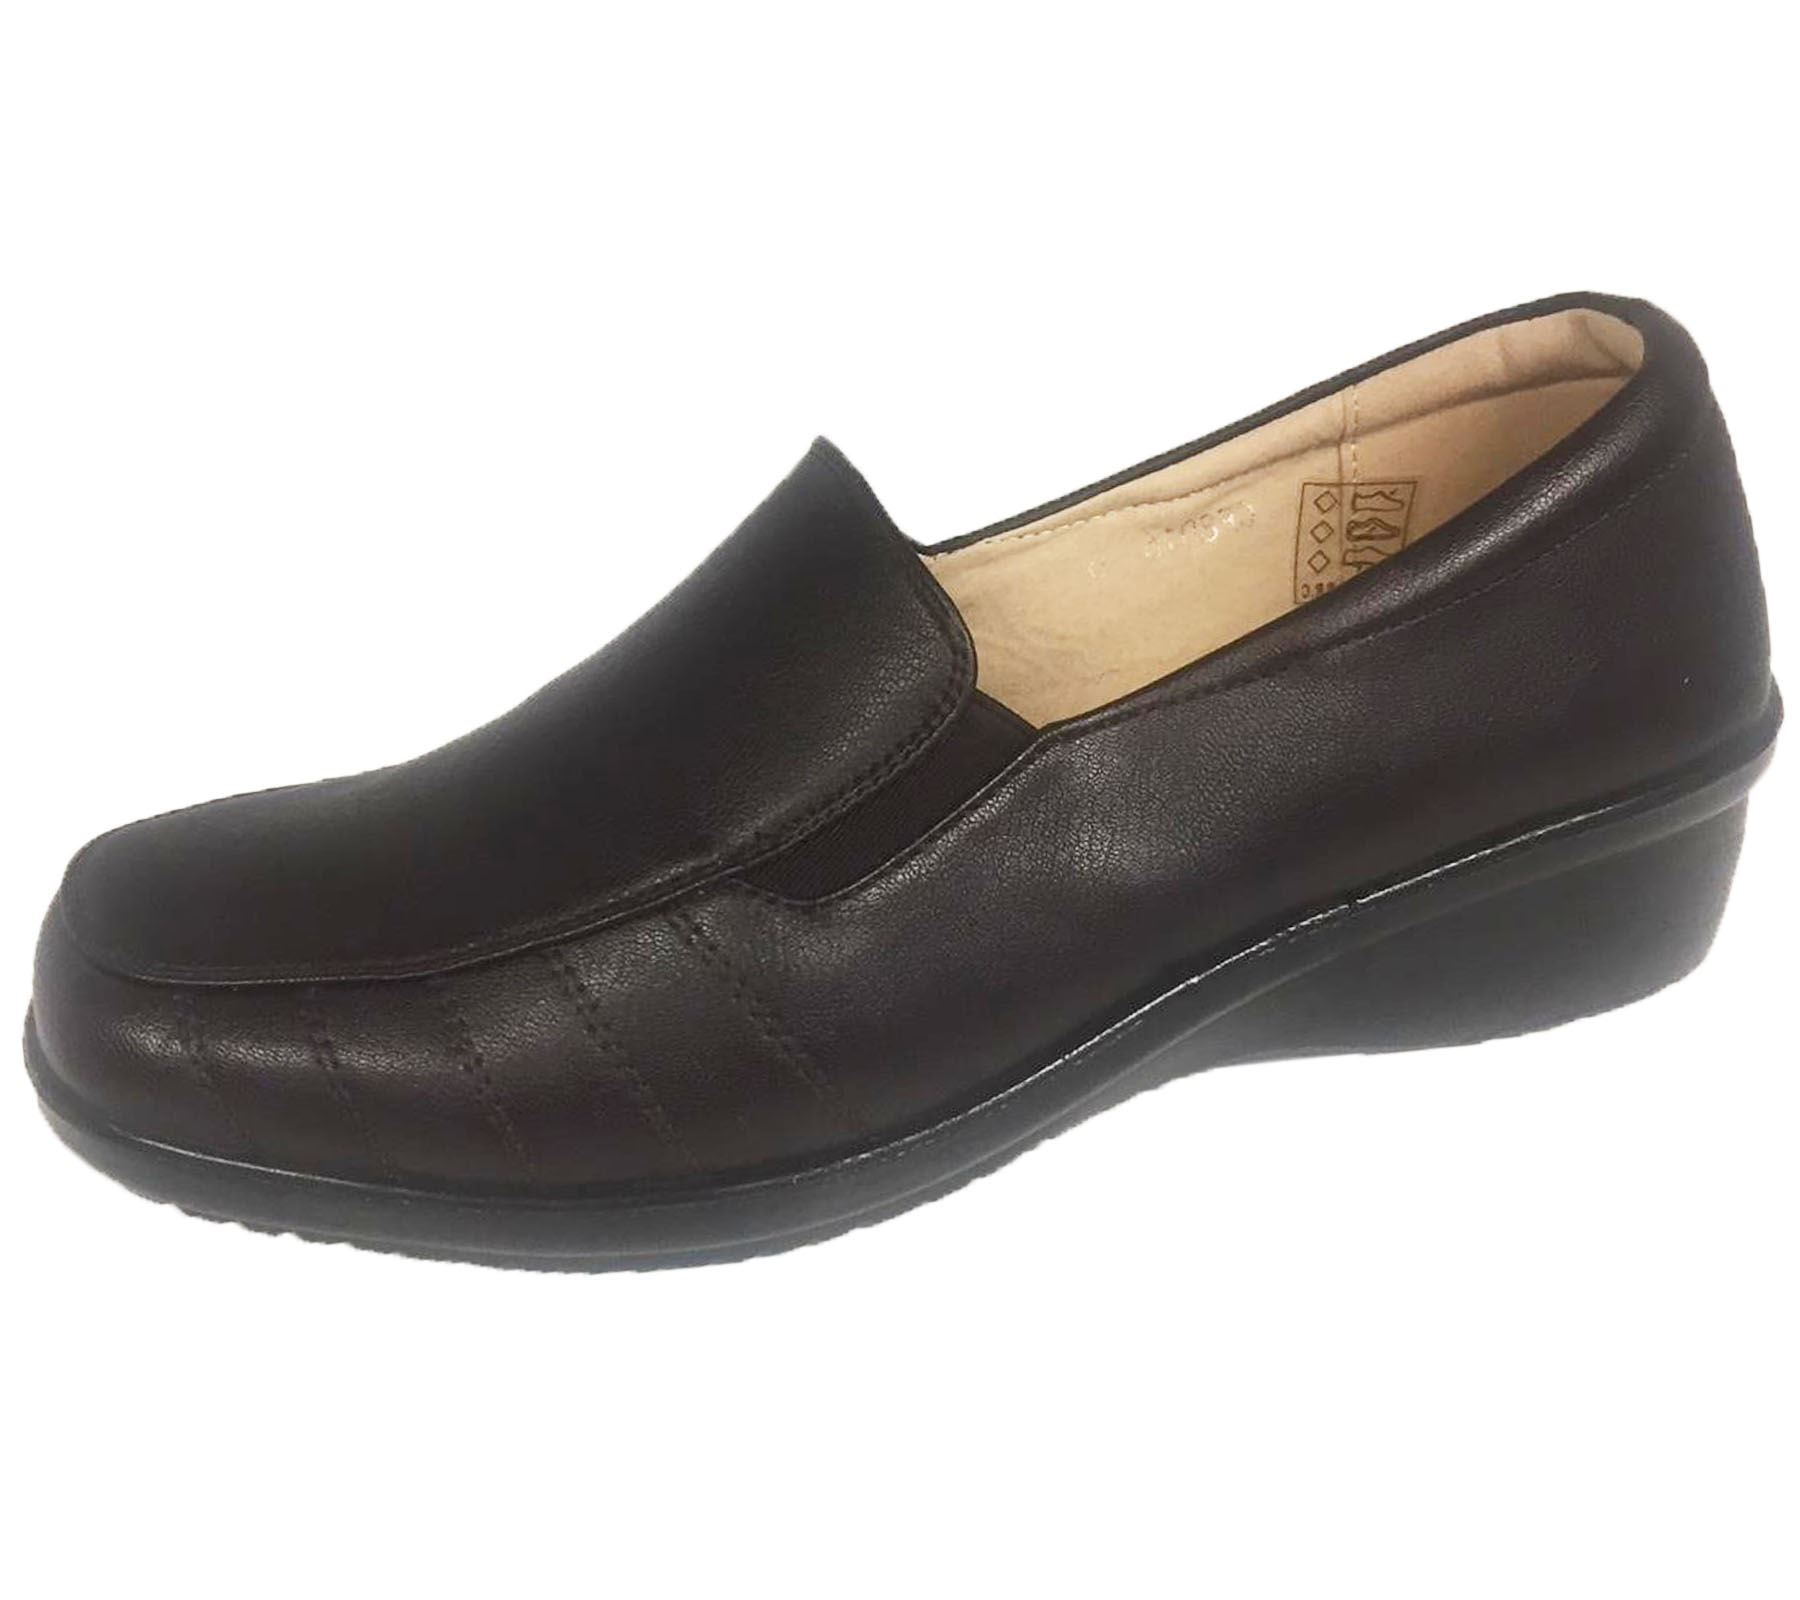 Ladies-Loafer-Moccasin-Womens-Casual-Comfort-Walk-Pumps-Slip-On-Shoes thumbnail 11